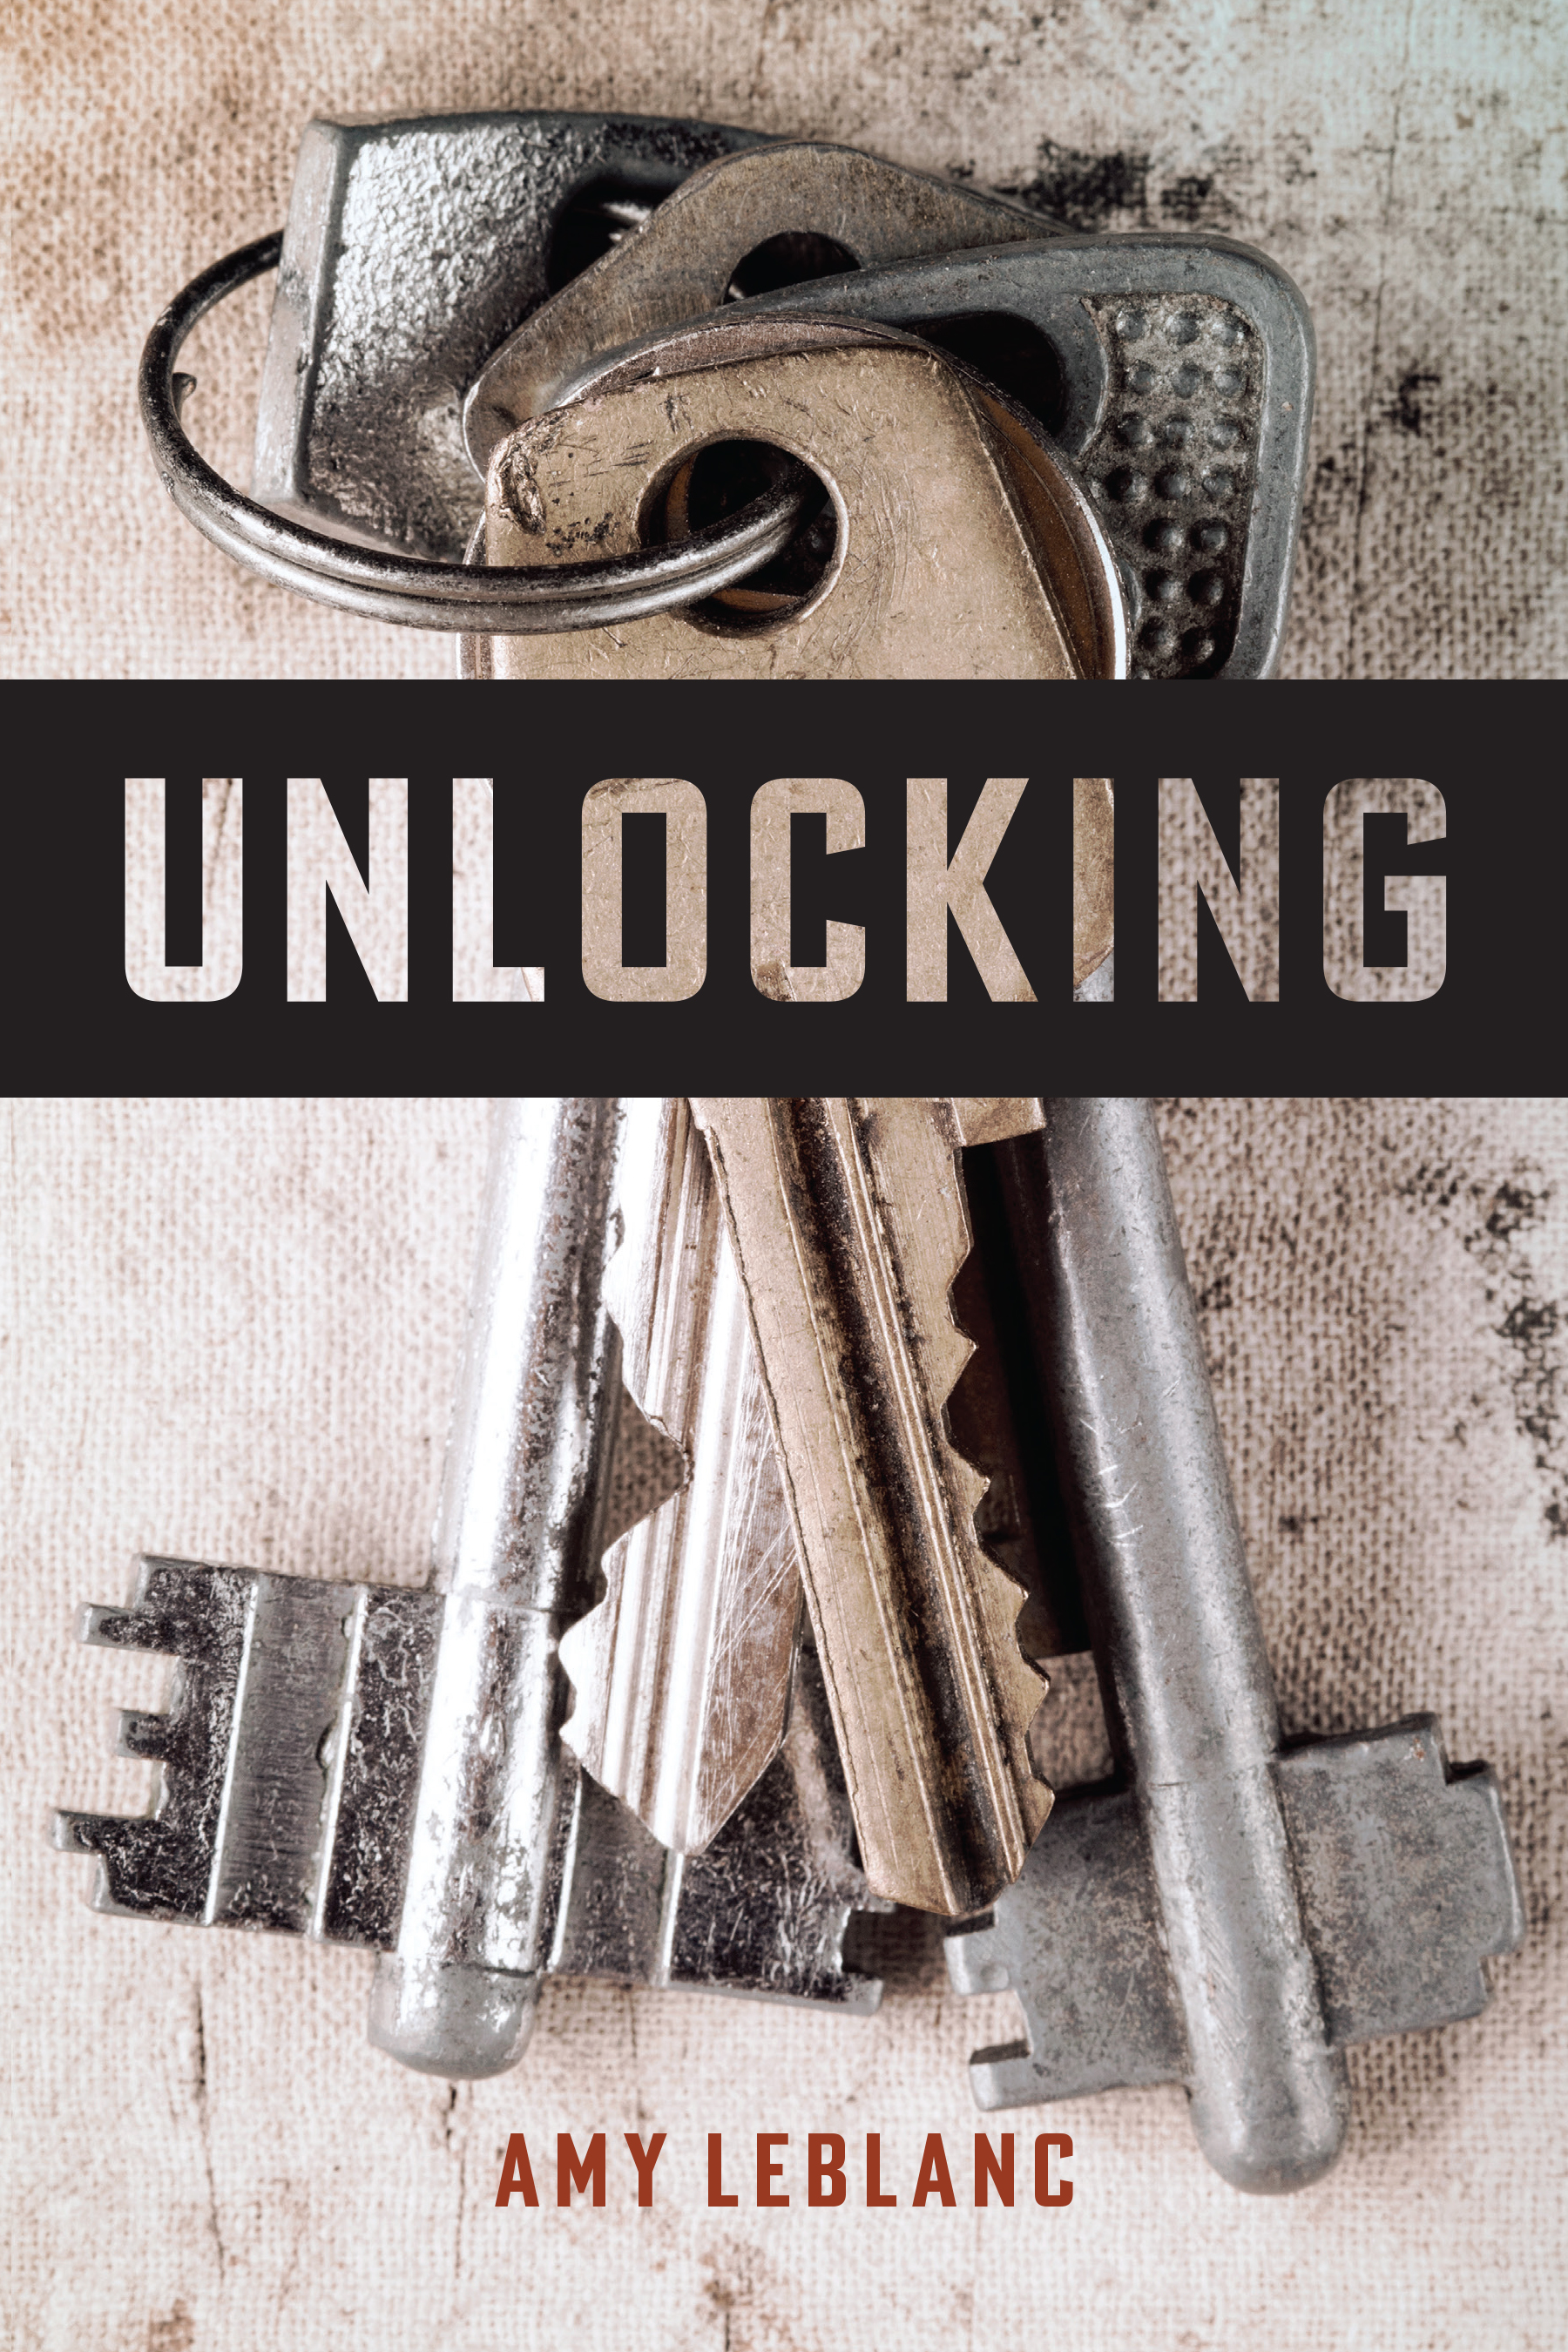 Book Cover Image for: Unlocking